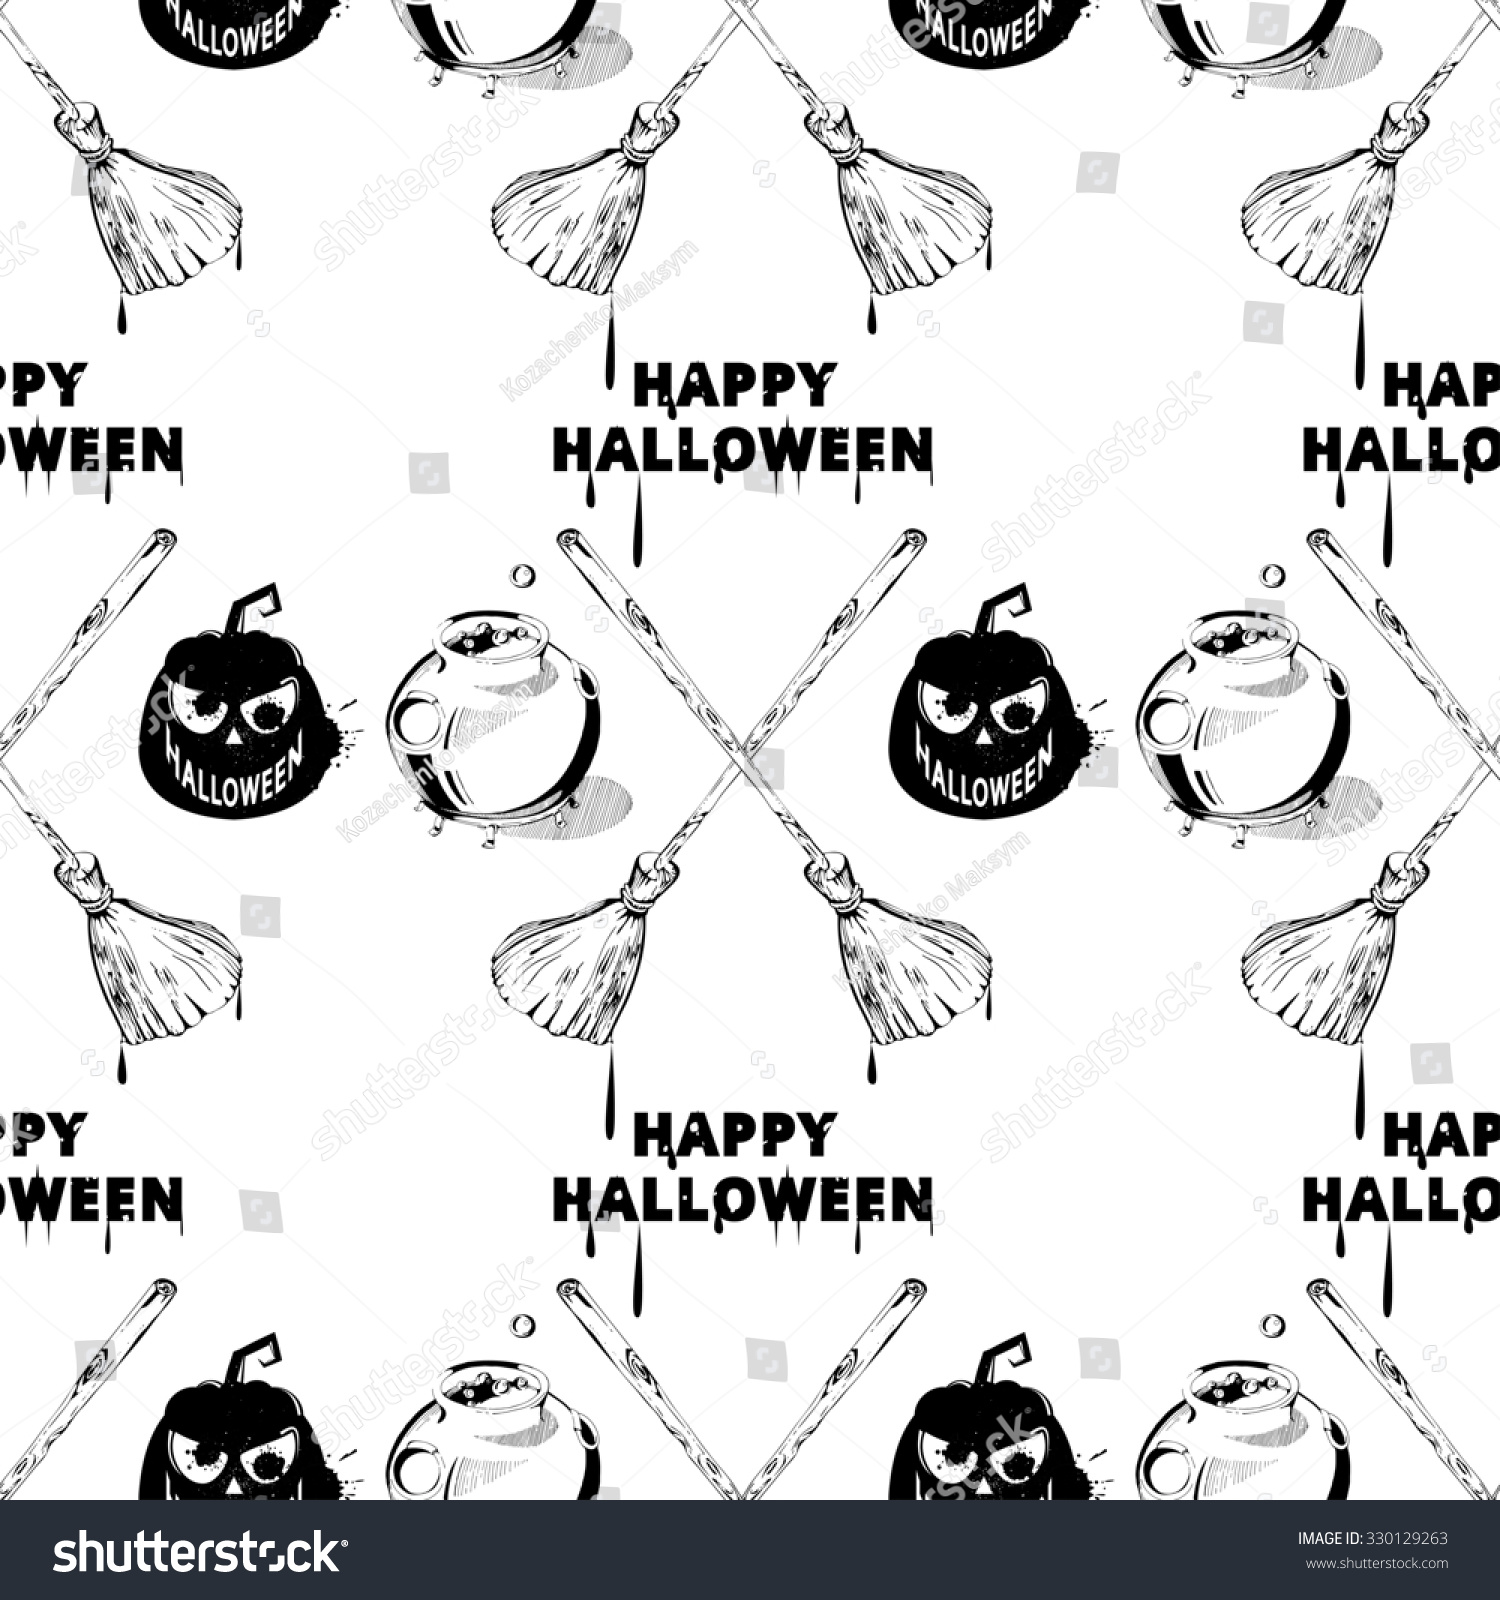 Happy Halloween Clipart Image. Seamless Halloween Pattern. Seamless Pattern  With Pumpkins, Jack